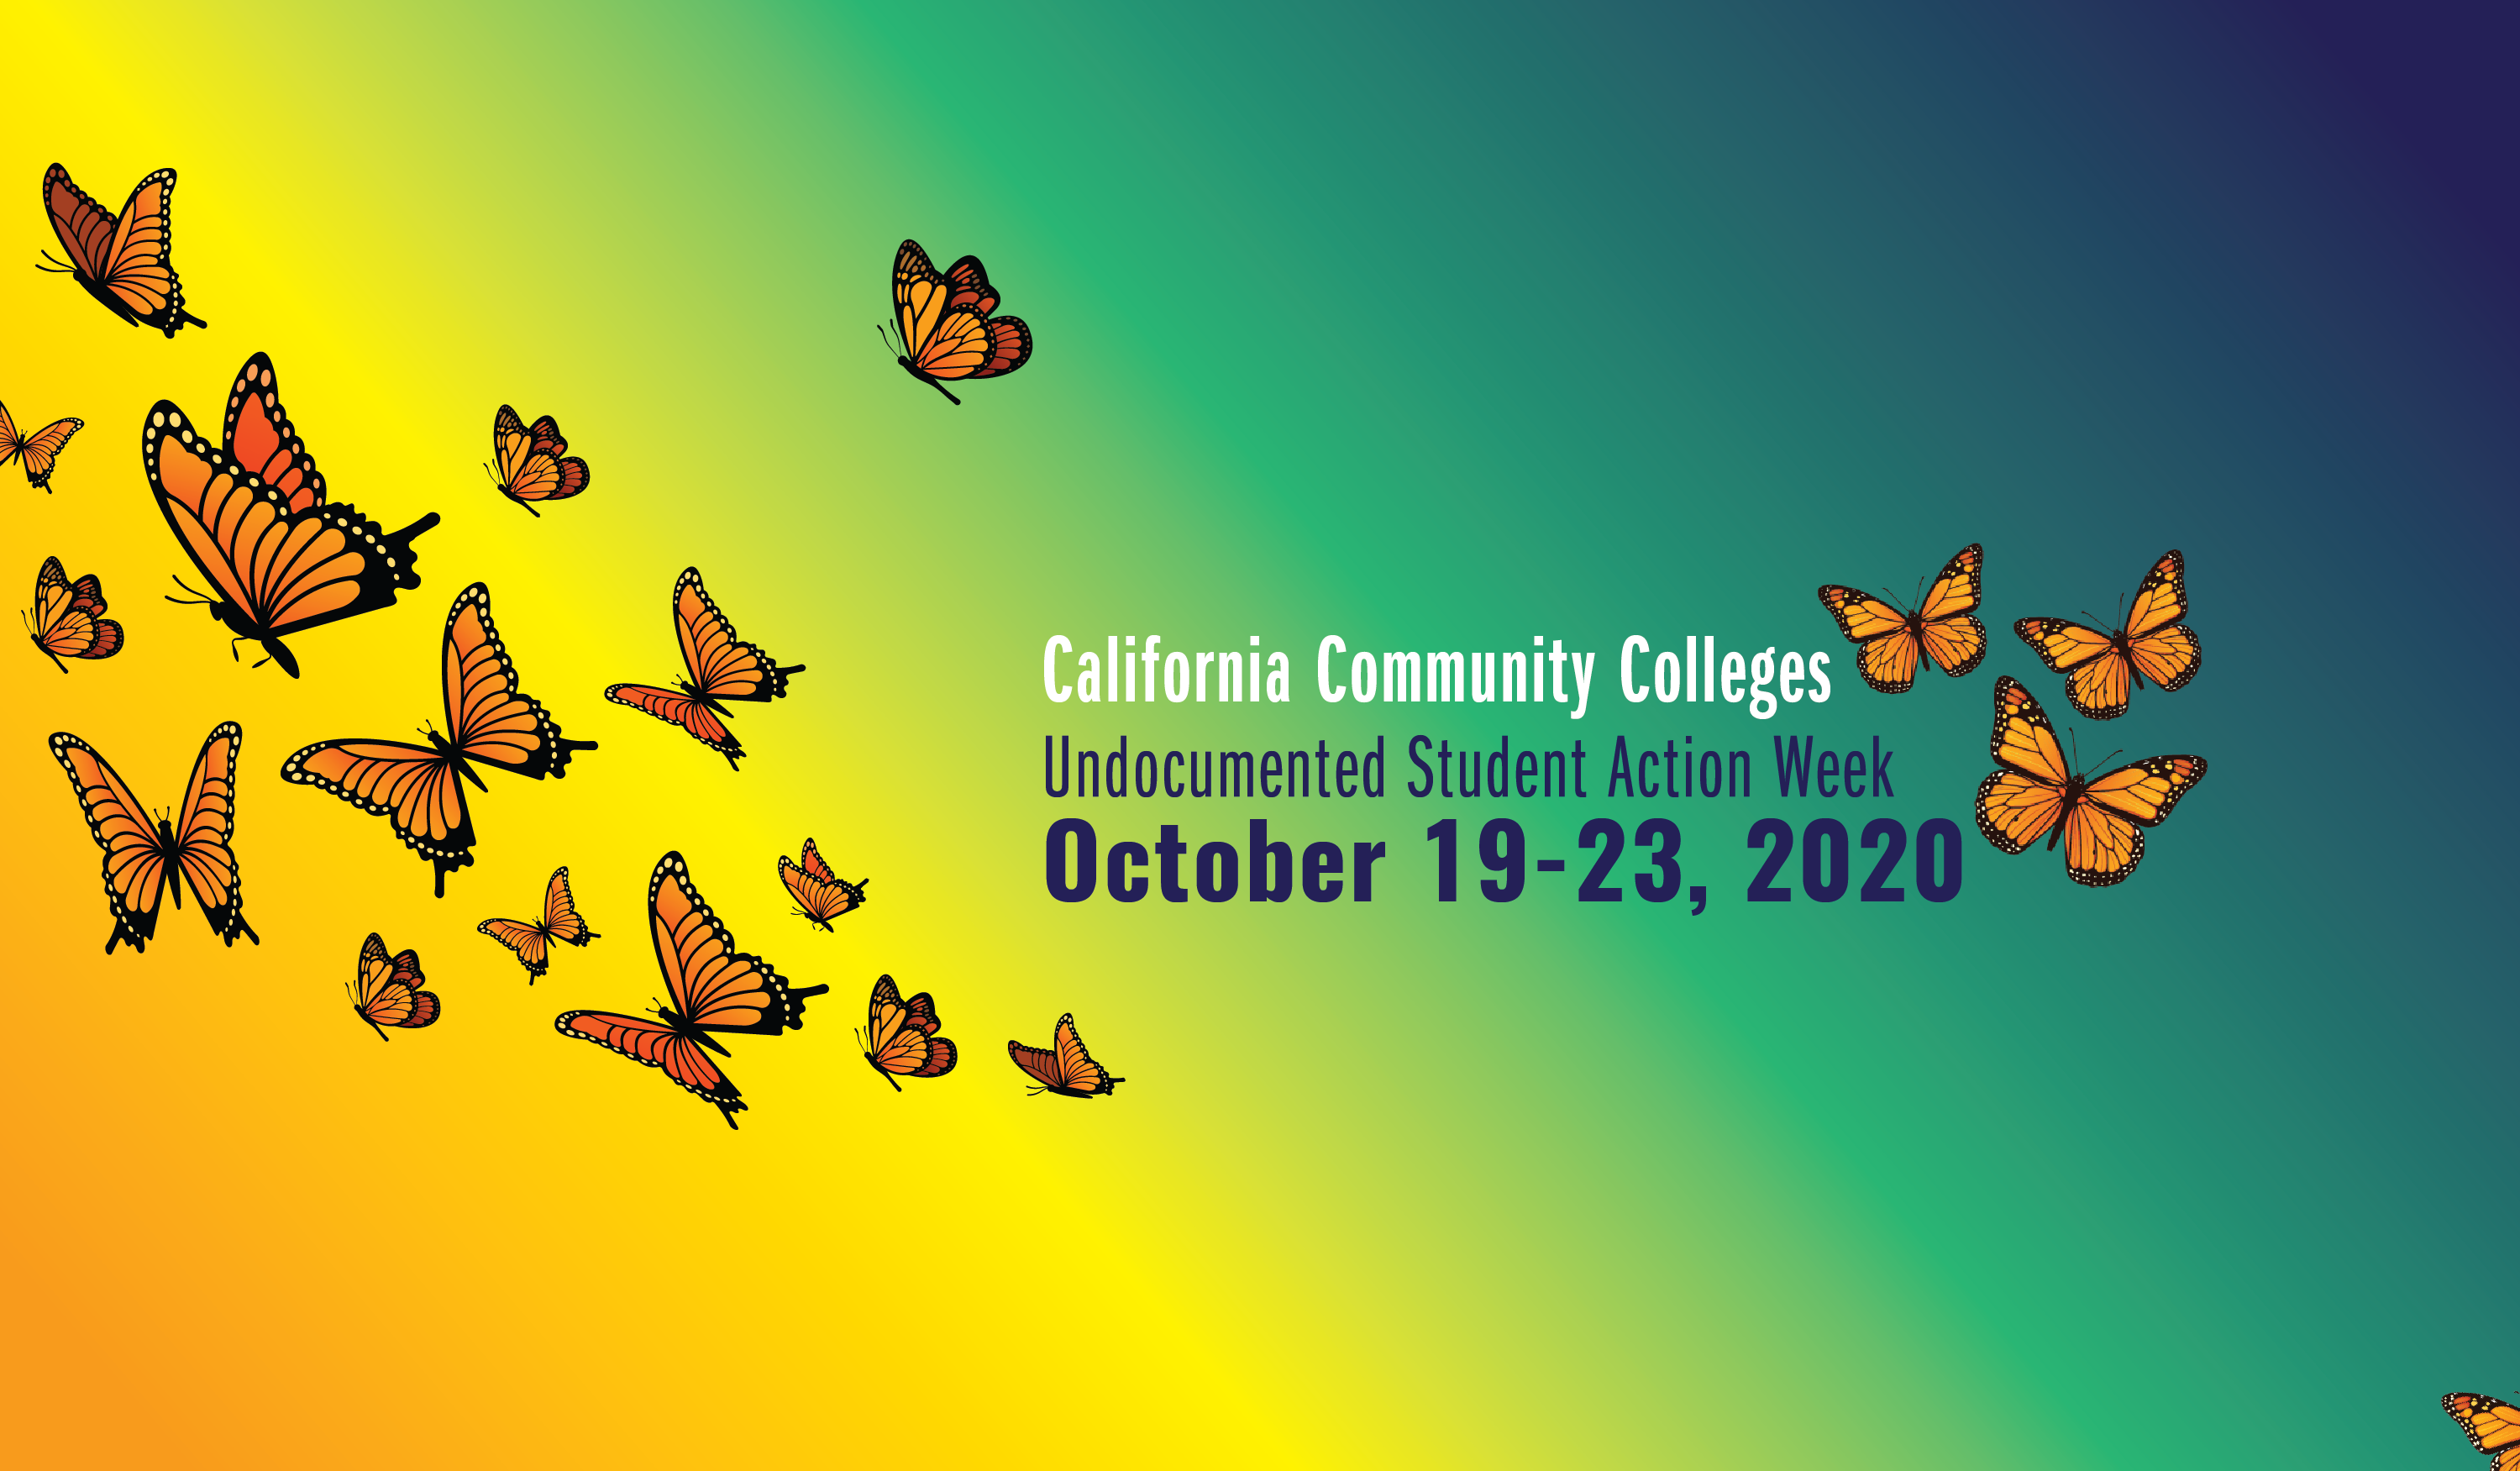 California Community Colleges Undocumented Student Action Week October 19-23, 2020